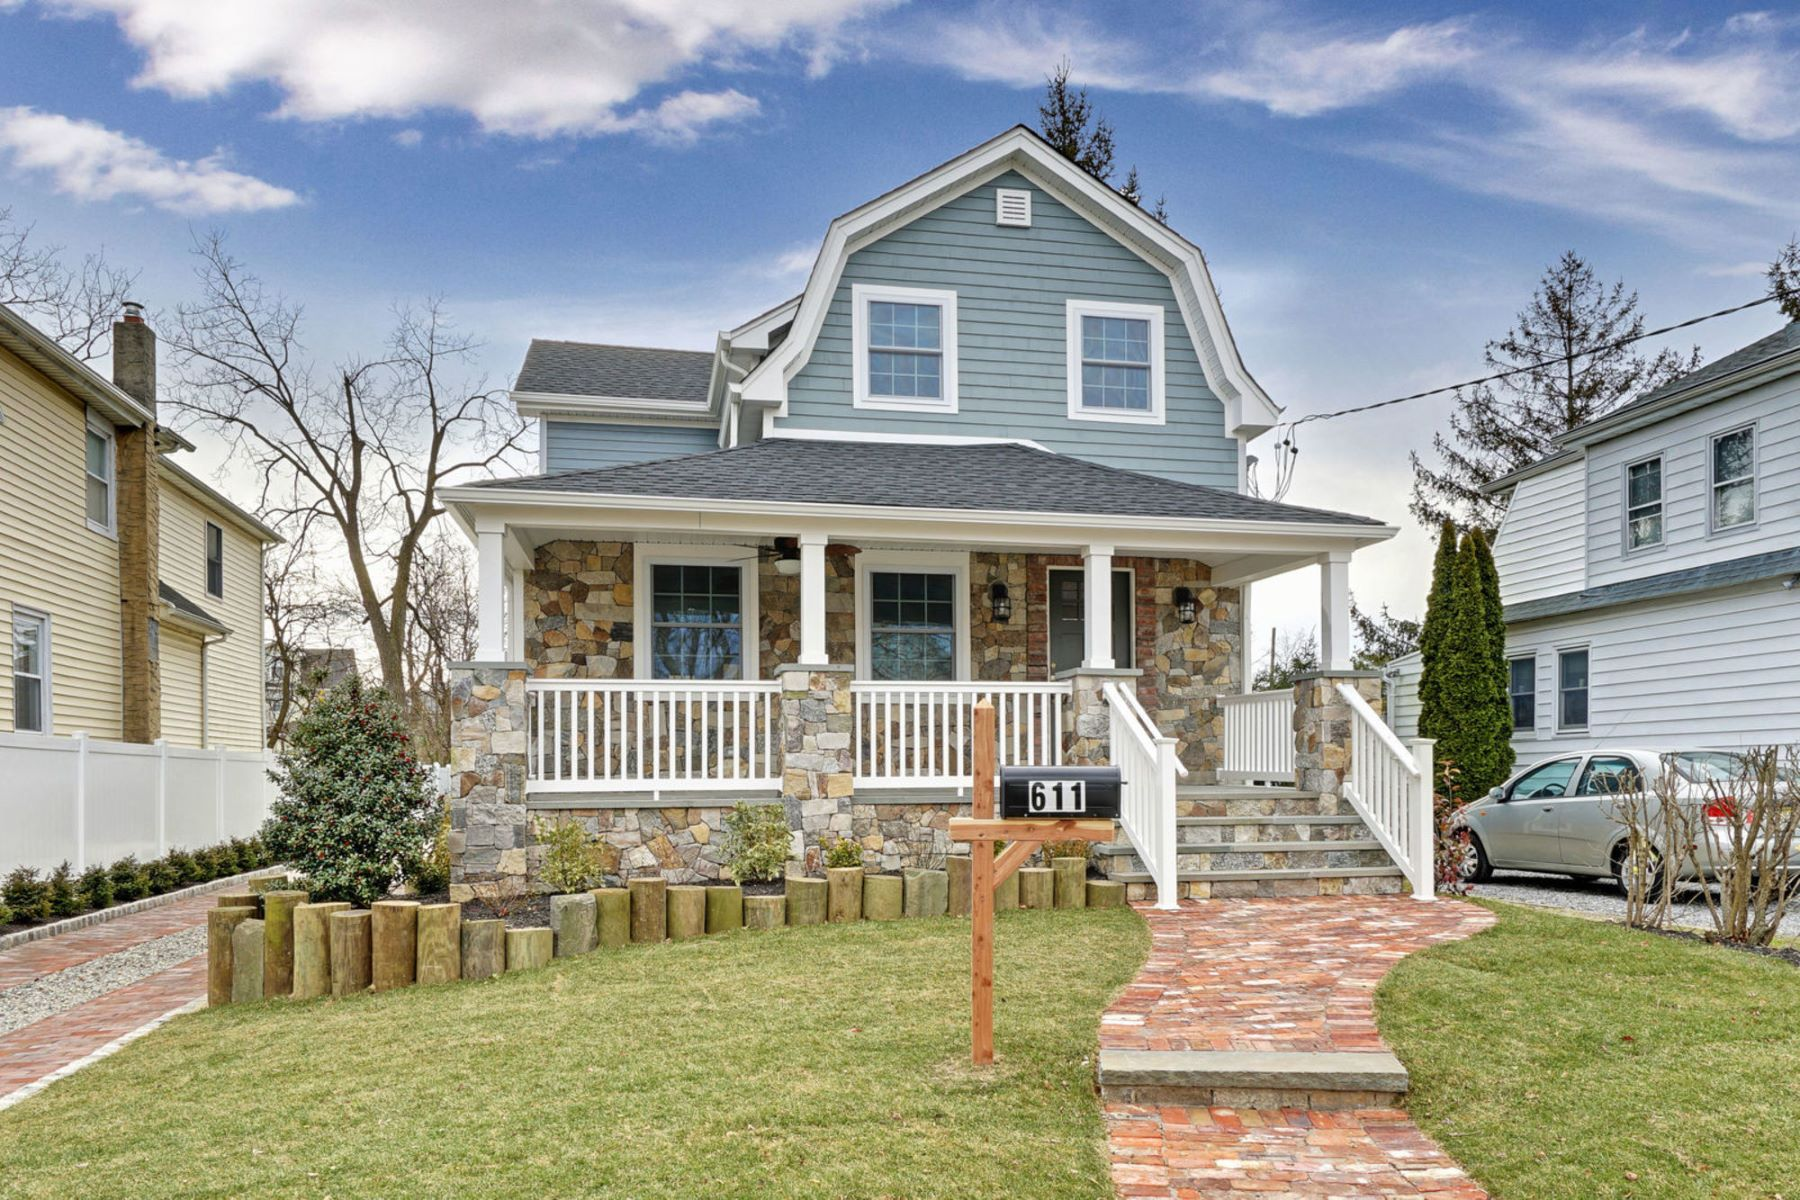 Single Family Home for Sale at Awesome Opportunity 611 13th Avenue, Belmar, New Jersey 07719 United States